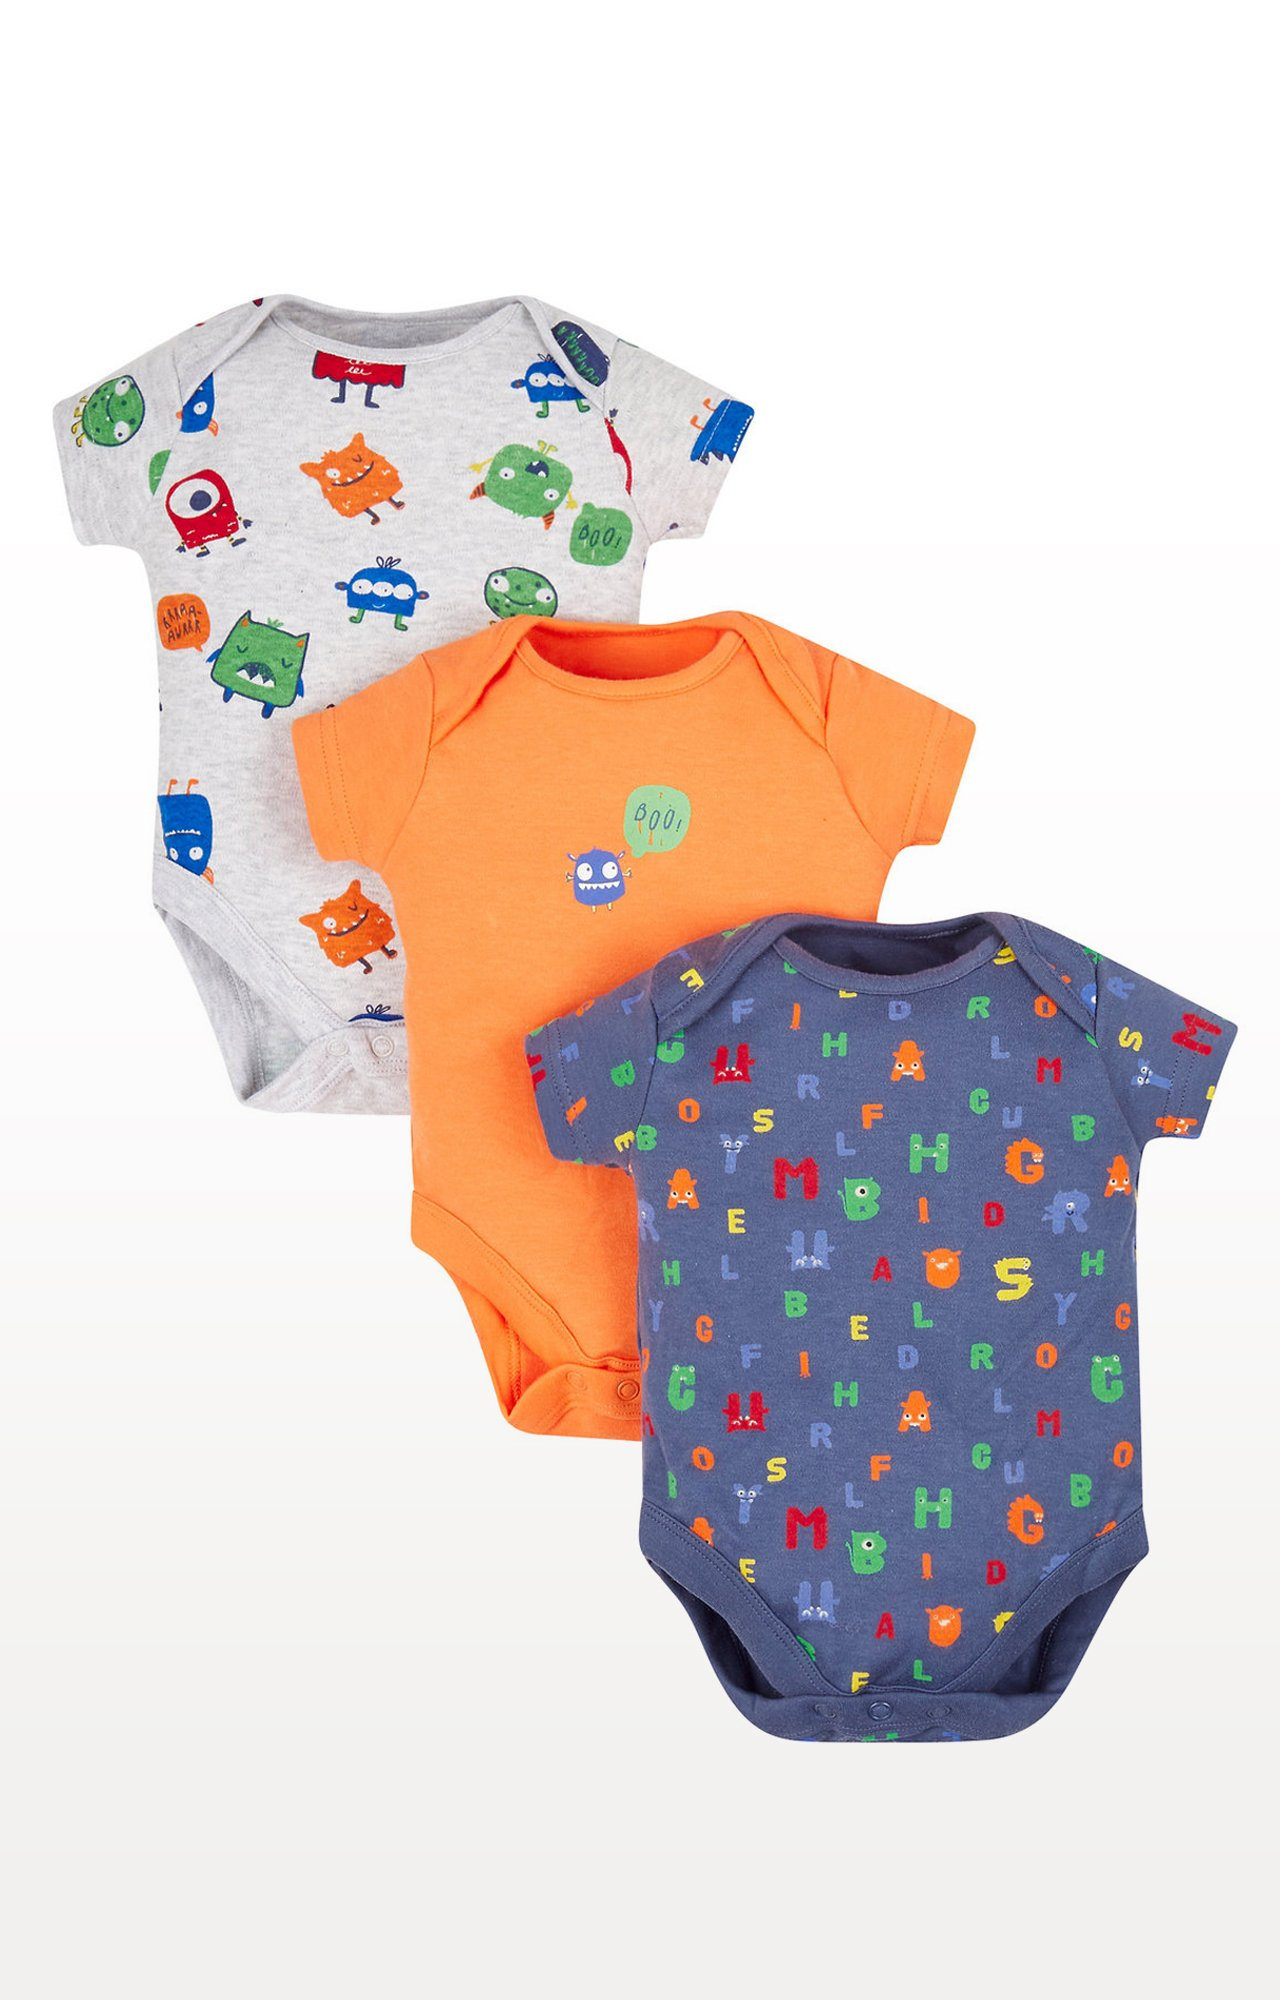 Mothercare | Grey, Orange and Blue Printed Romper - Pack of 3